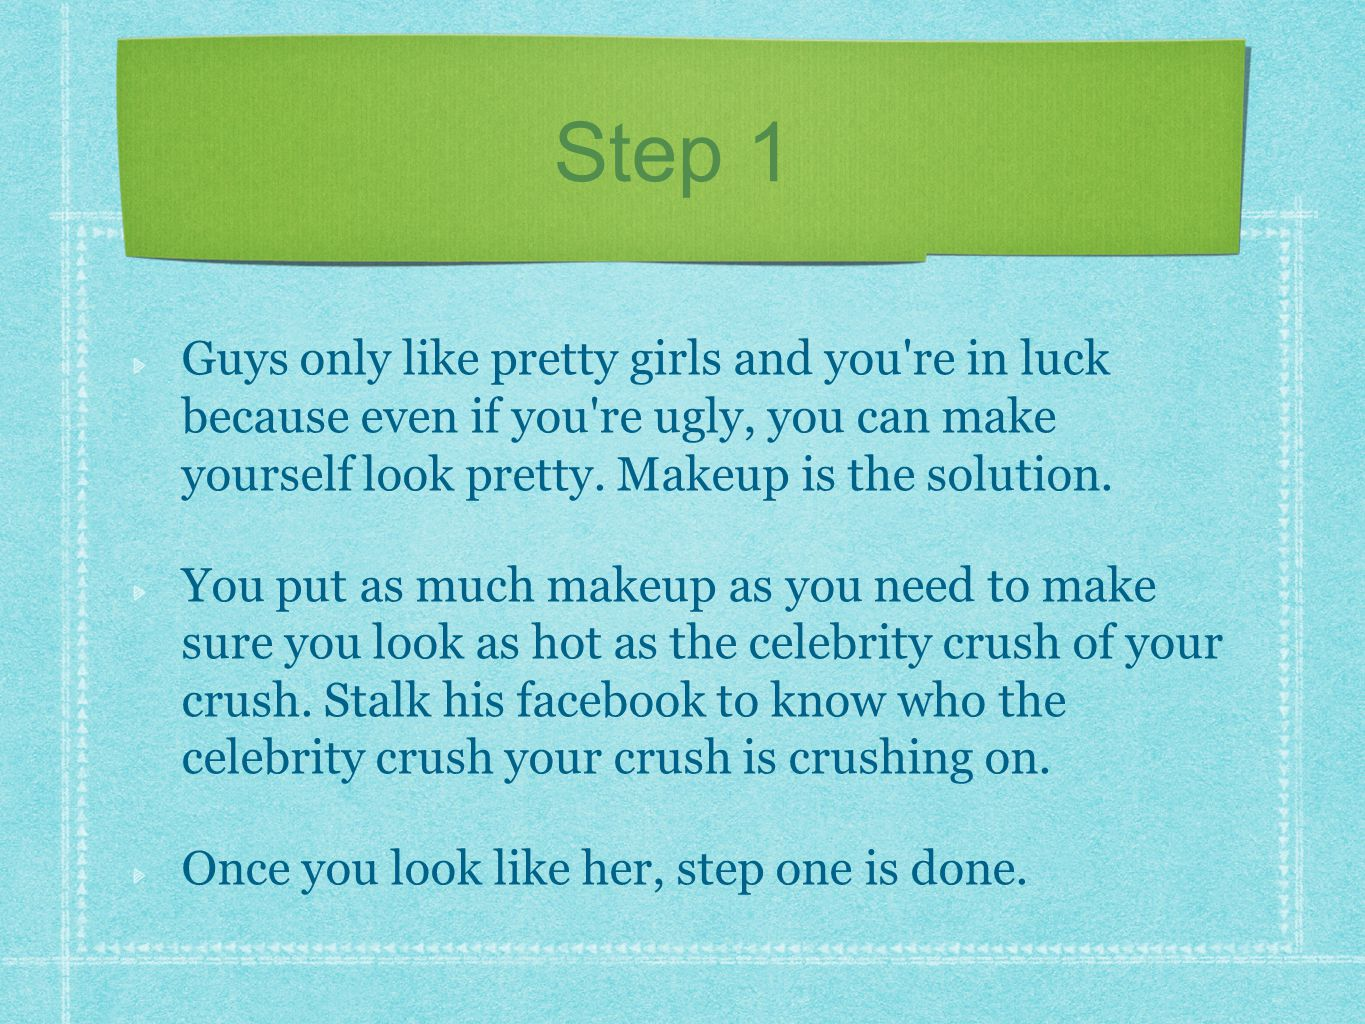 Would Your Celebrity Crush Like You in Real Life?